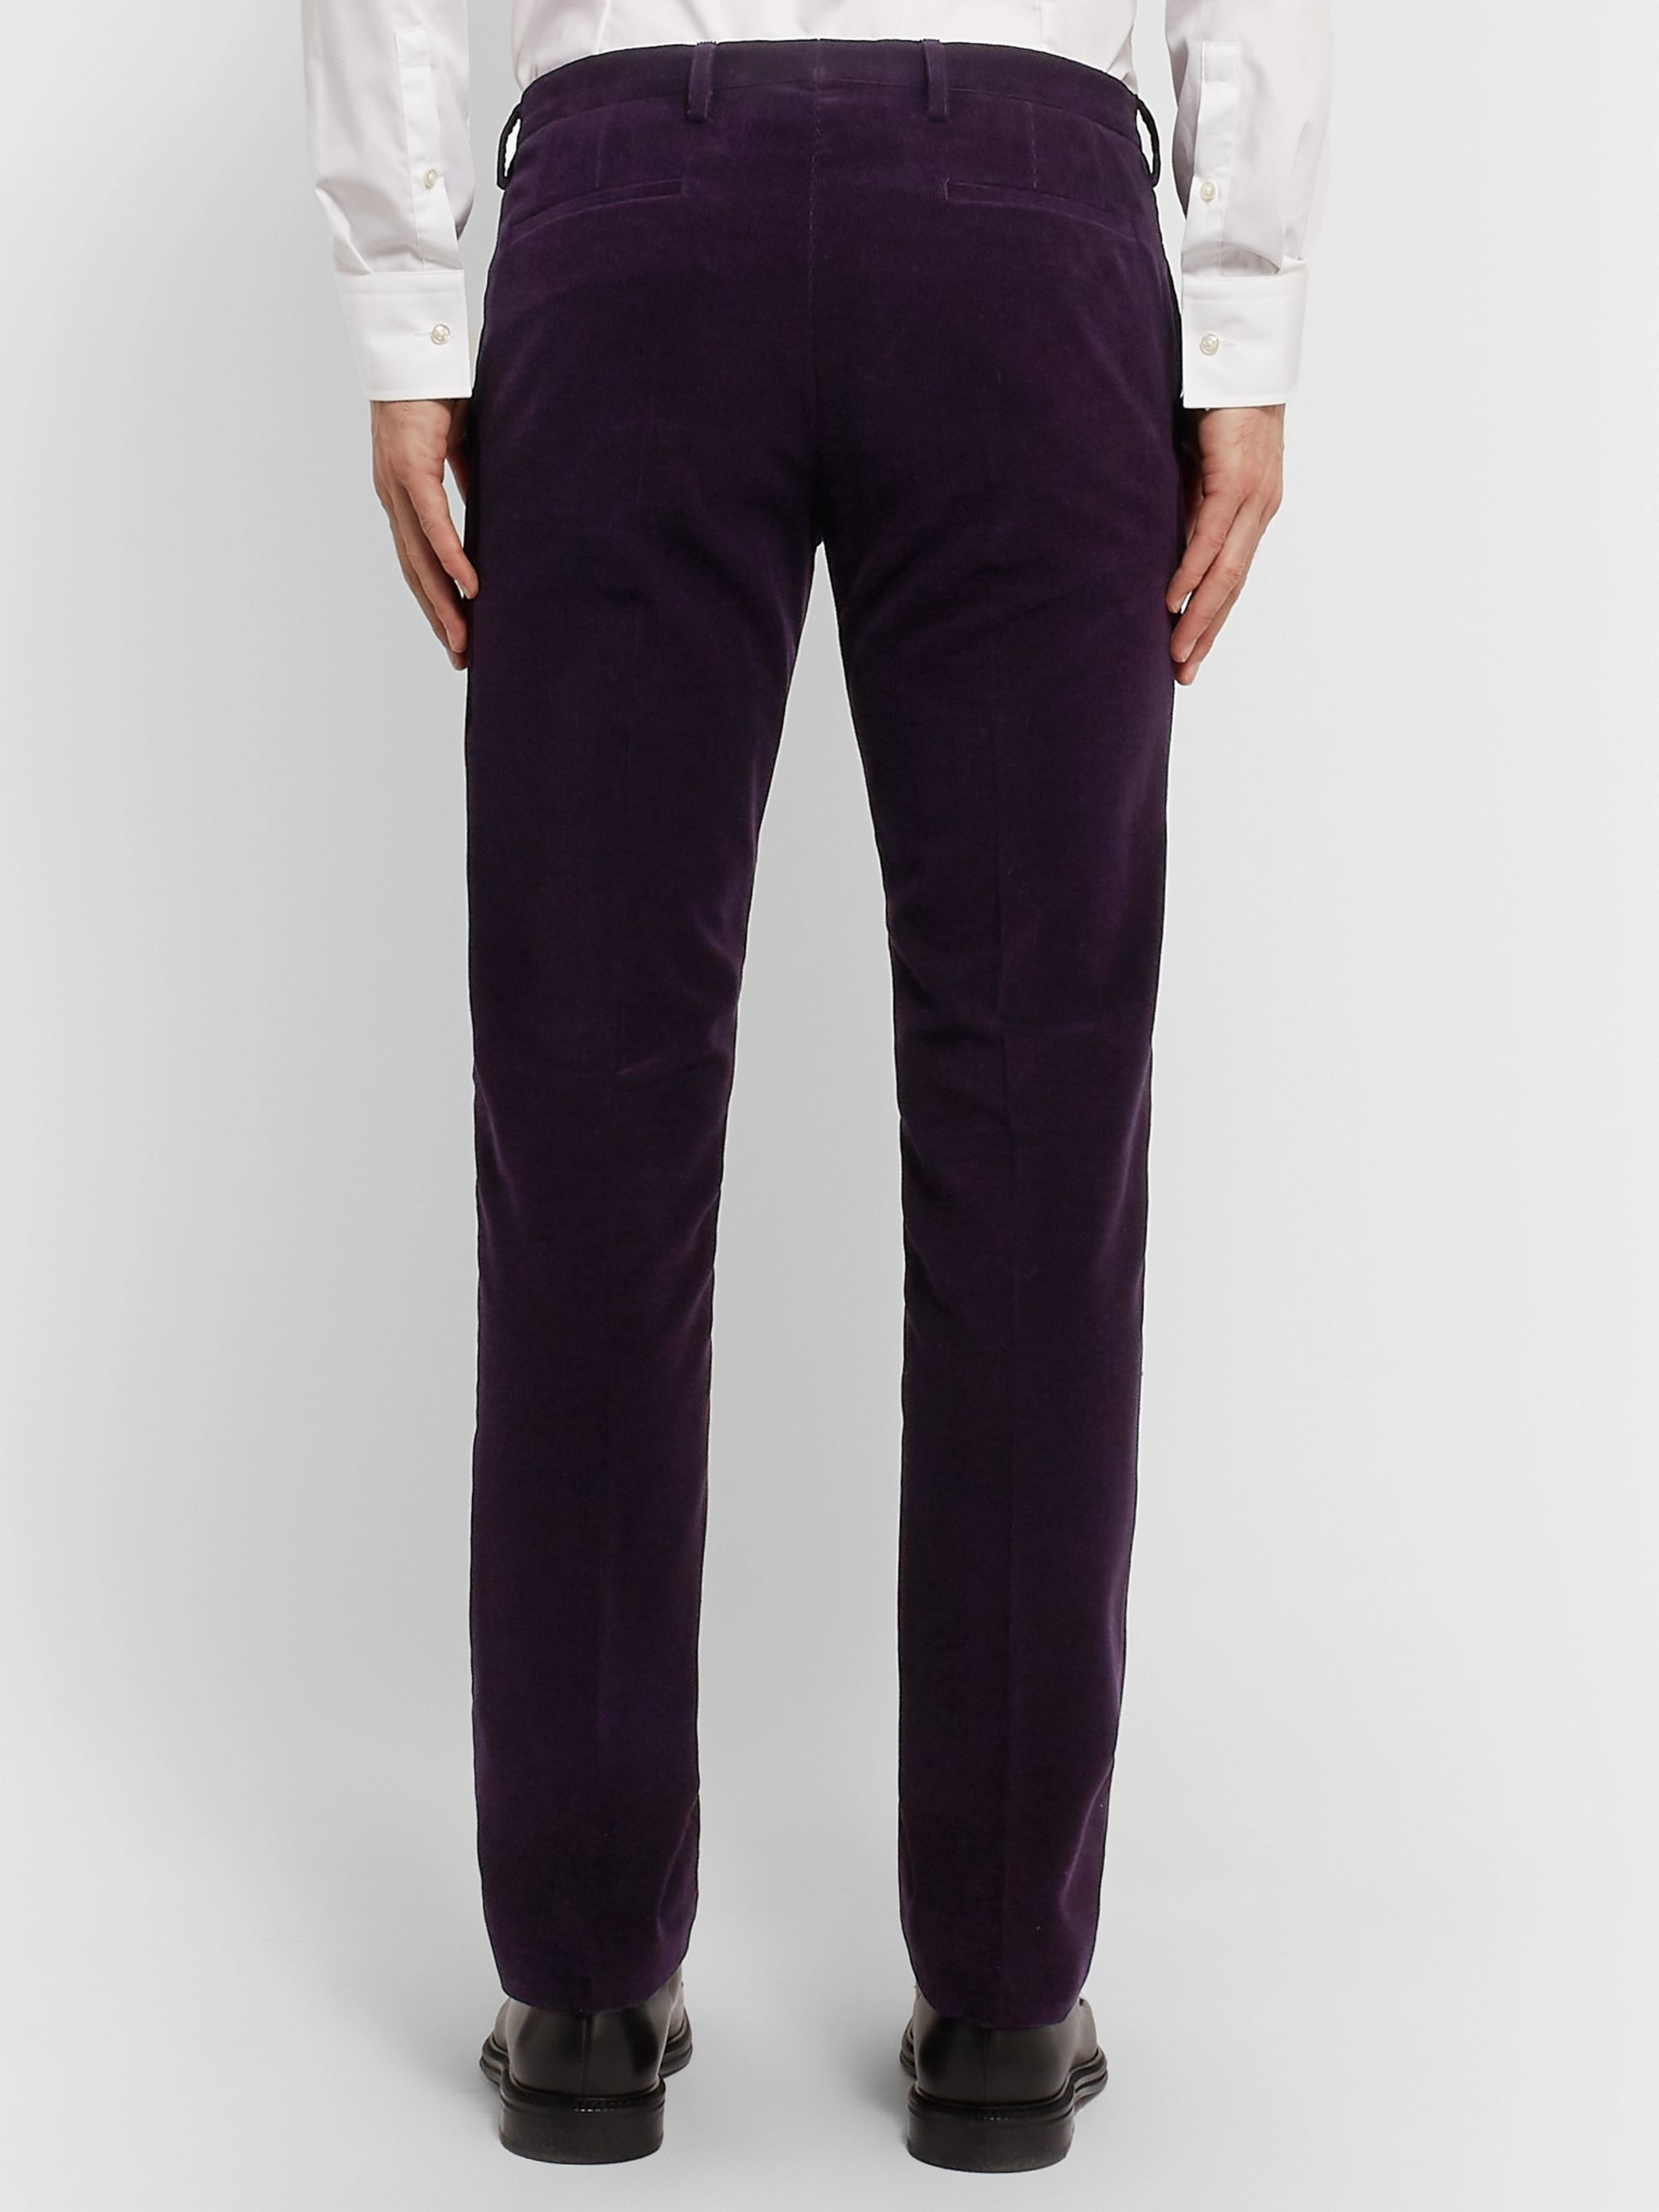 Paul Smith Teal Slim-Fit Cotton and Cashmere-Blend Corduroy Suit Trousers